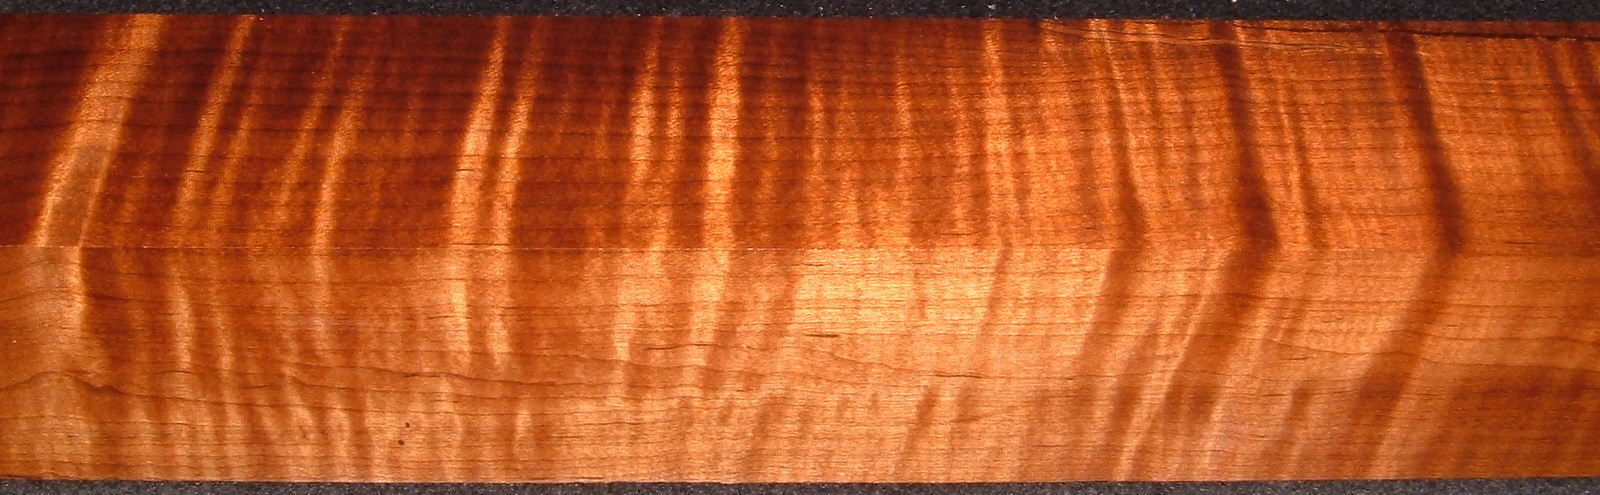 RTB-1, 2-3/8x2-5/8x40, Roasted Torrefied, Curly Tiger Maple Turning Block